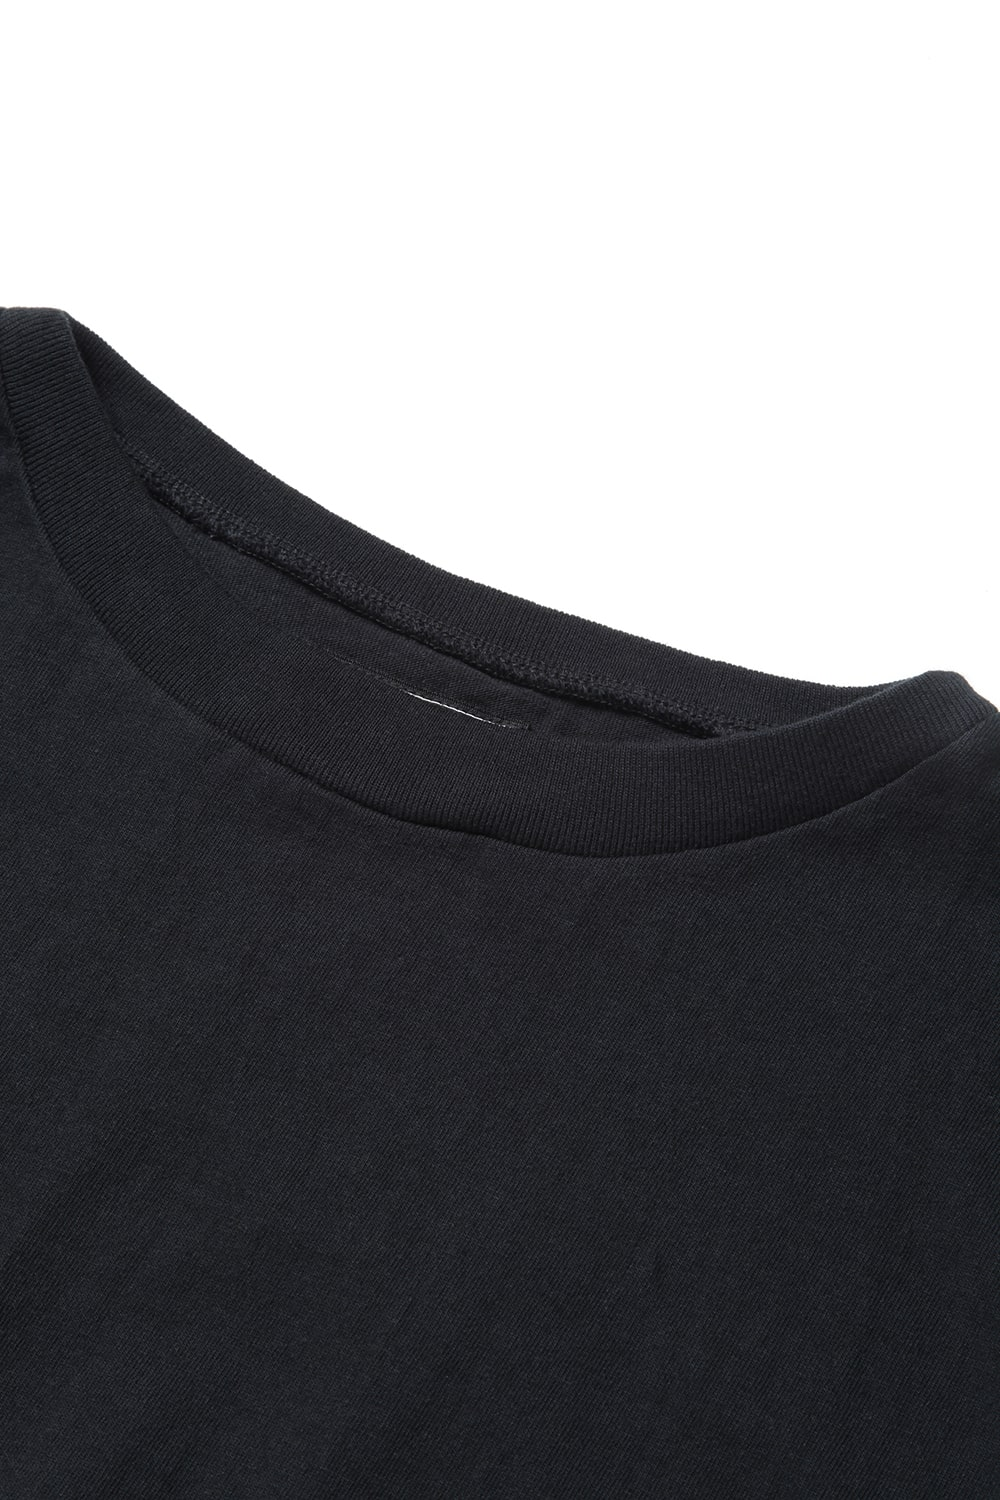 CK Boat Neck Tee -Black-